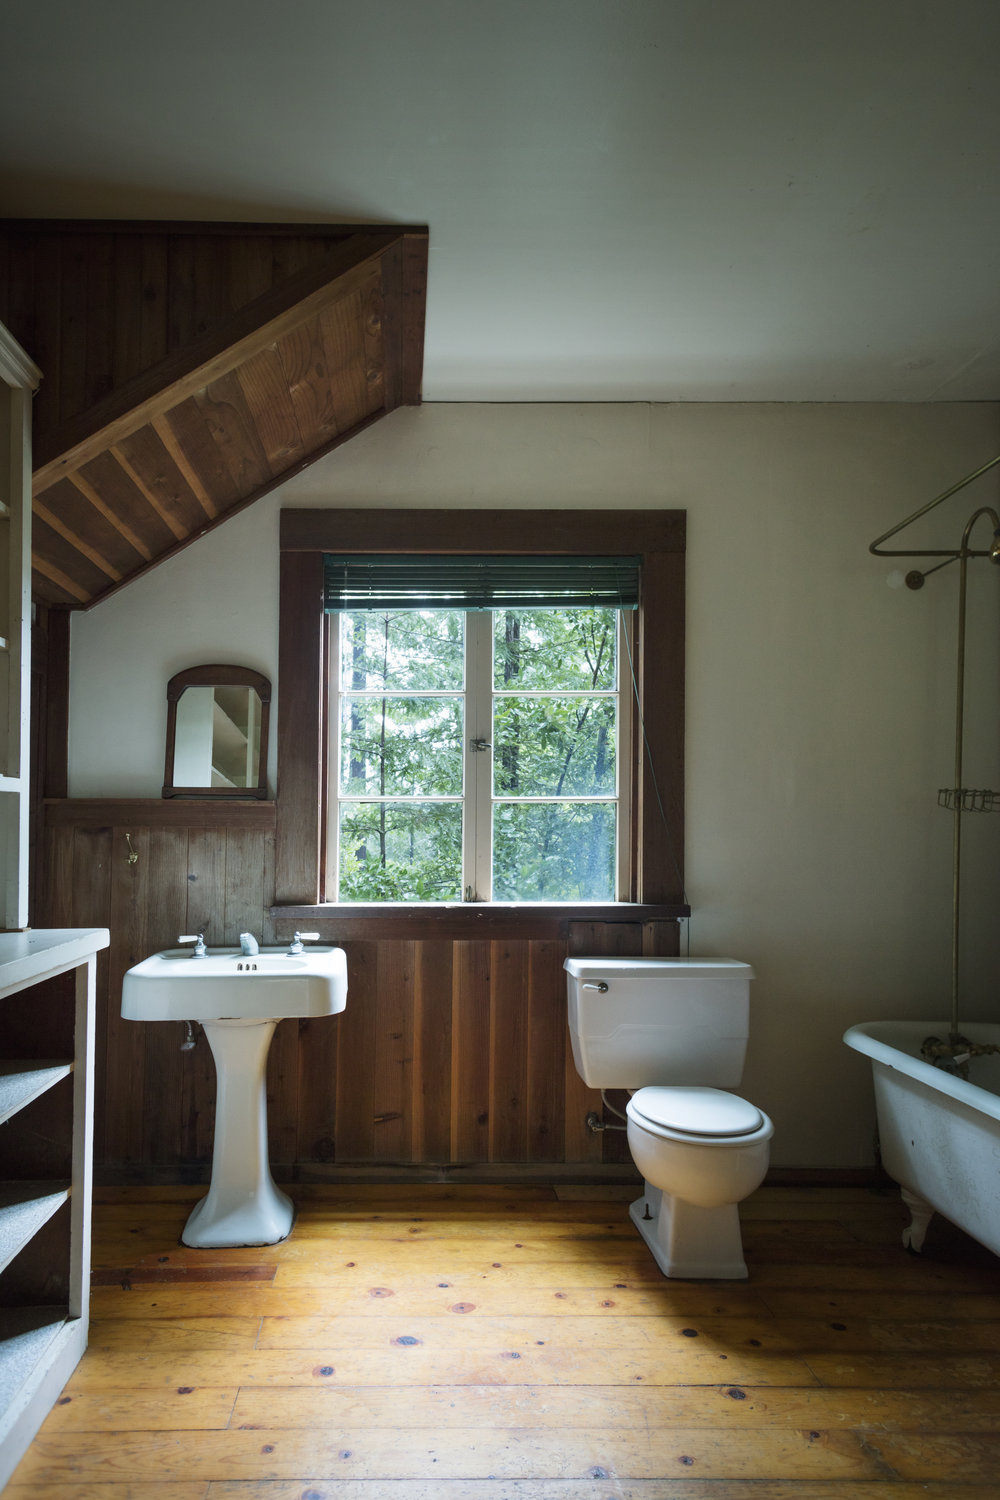 Downstairs bath in a home for sale in Philo, CA